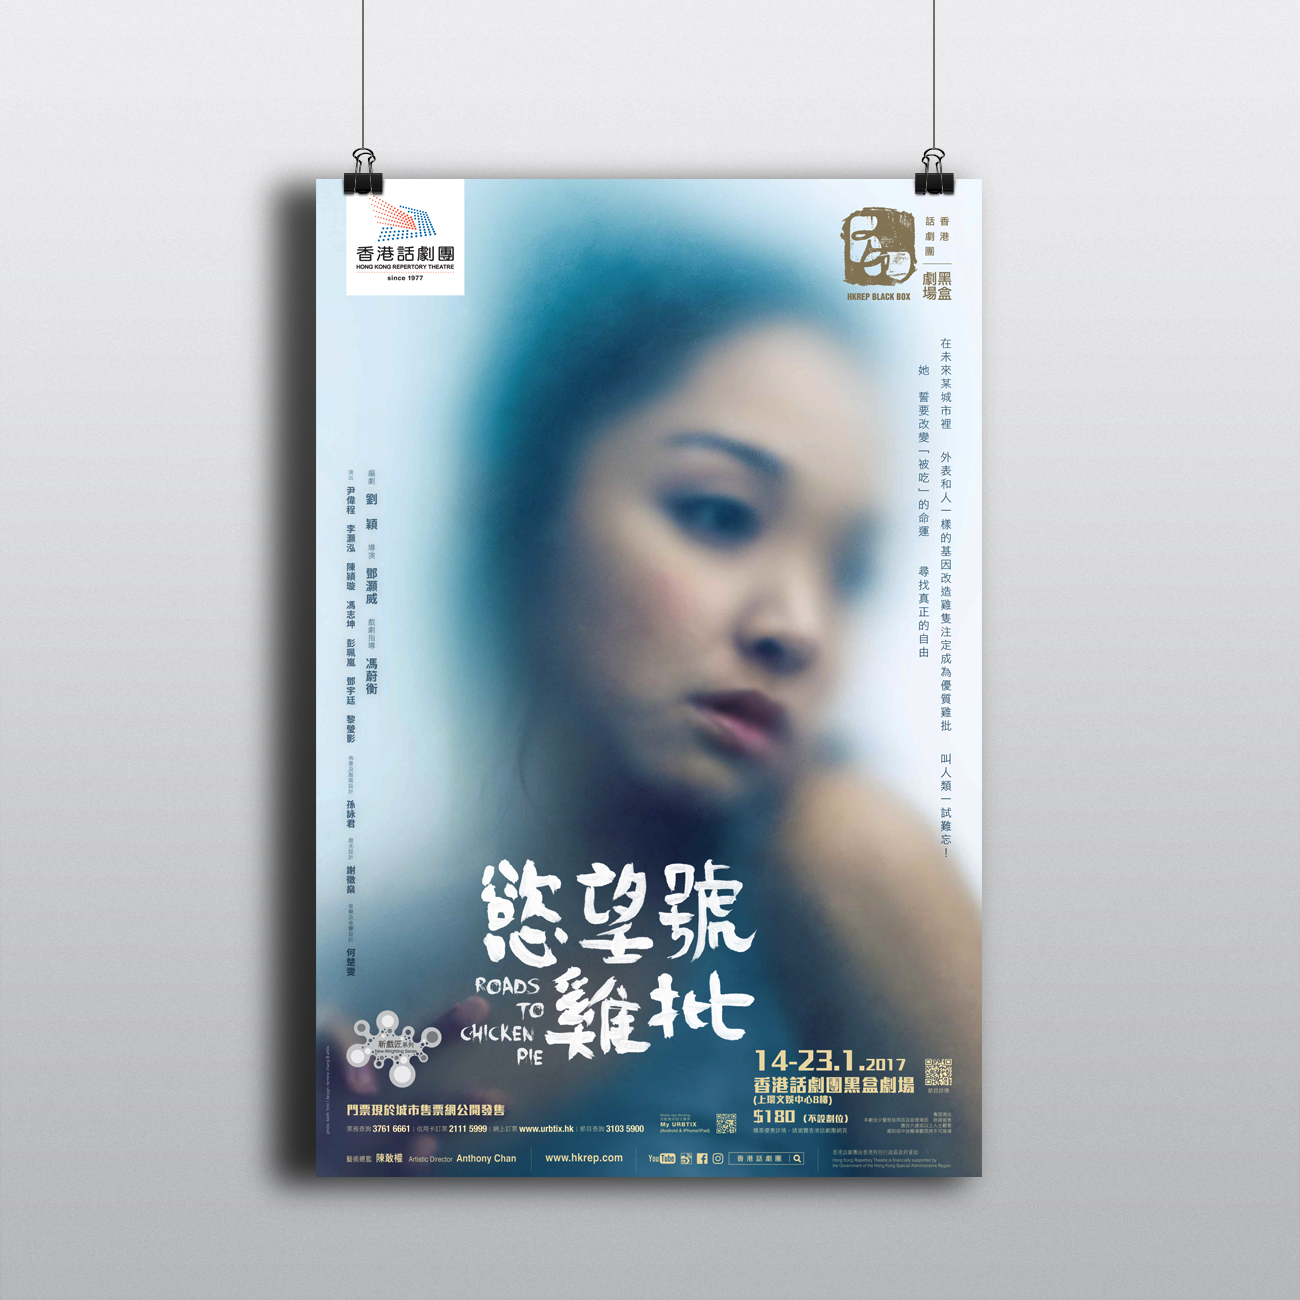 Hong Kong Repertory Theatre Blackbox Production -  Roads to Chicken Pie